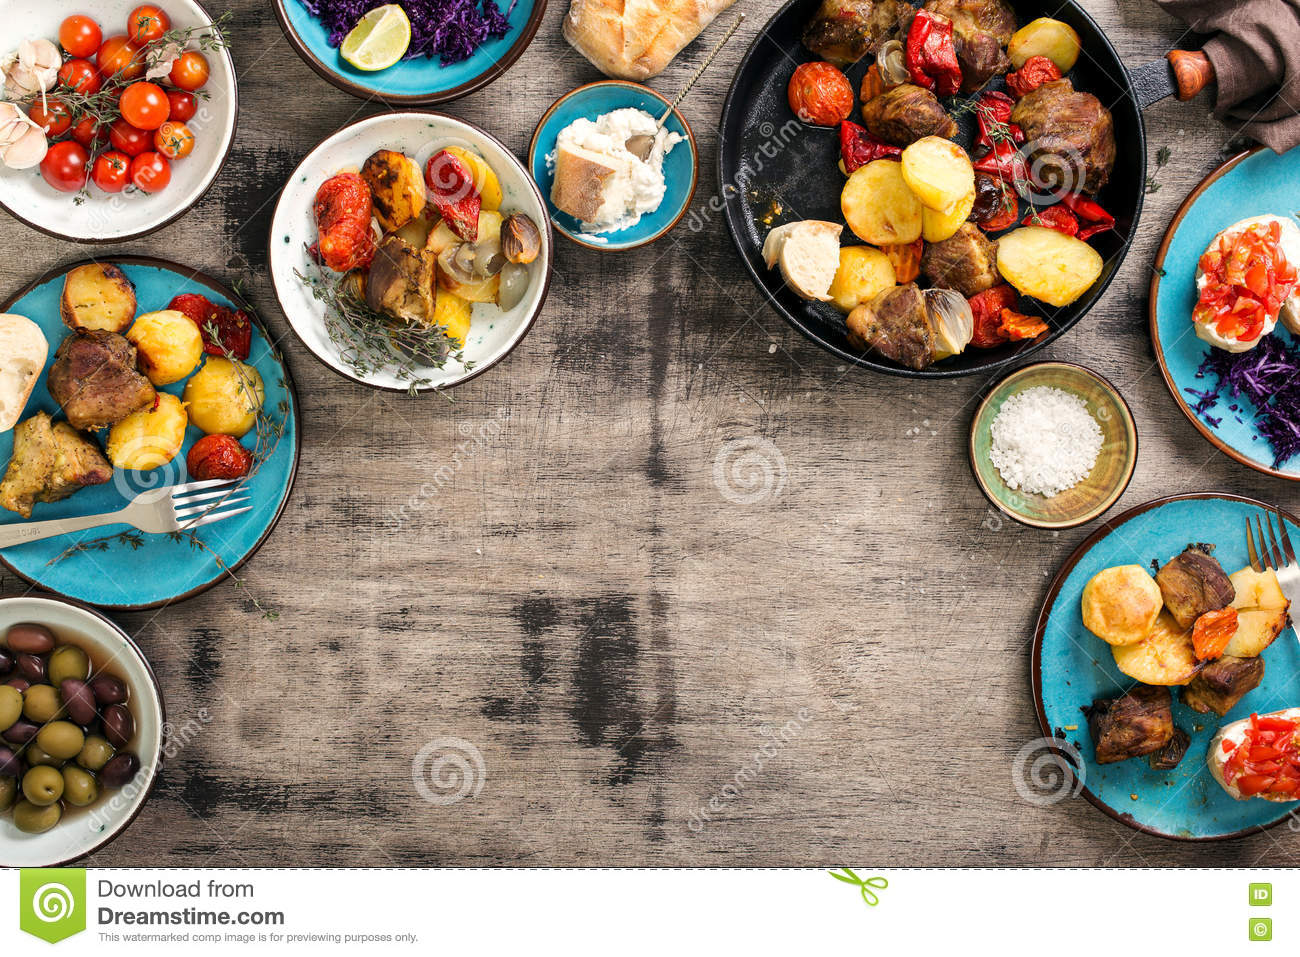 Dinner table with variety food, top view